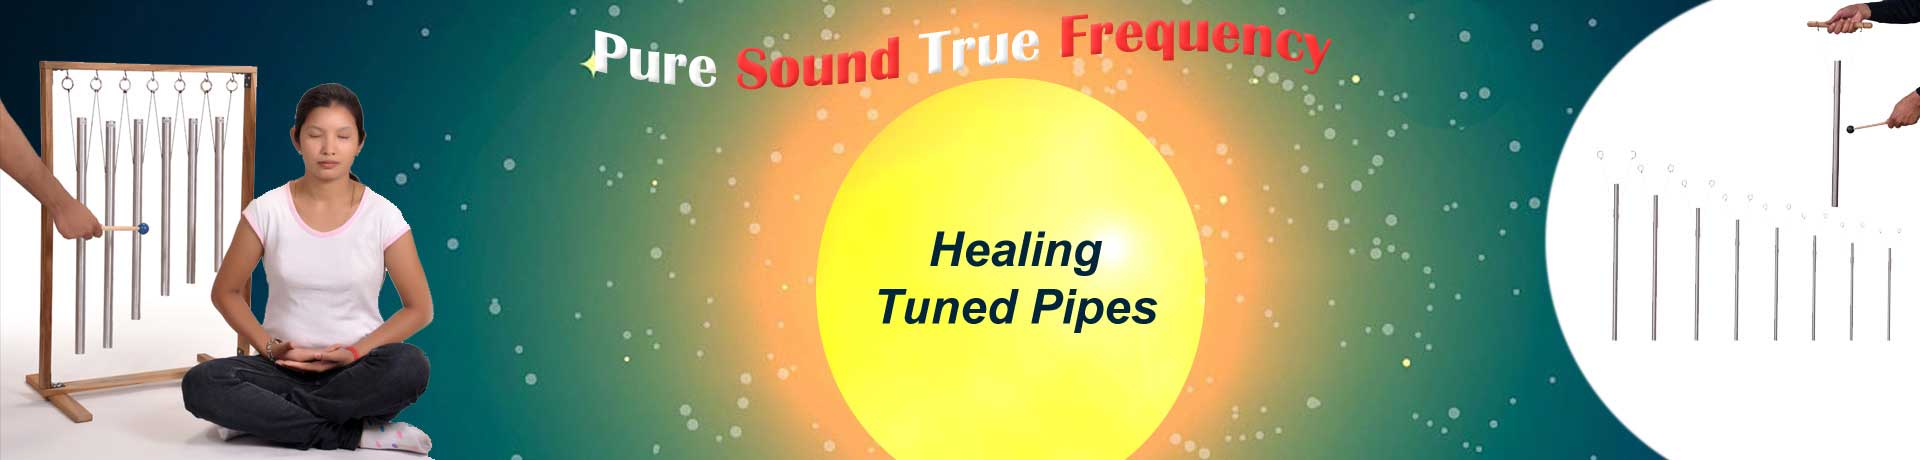 Healing Tuned Pipes